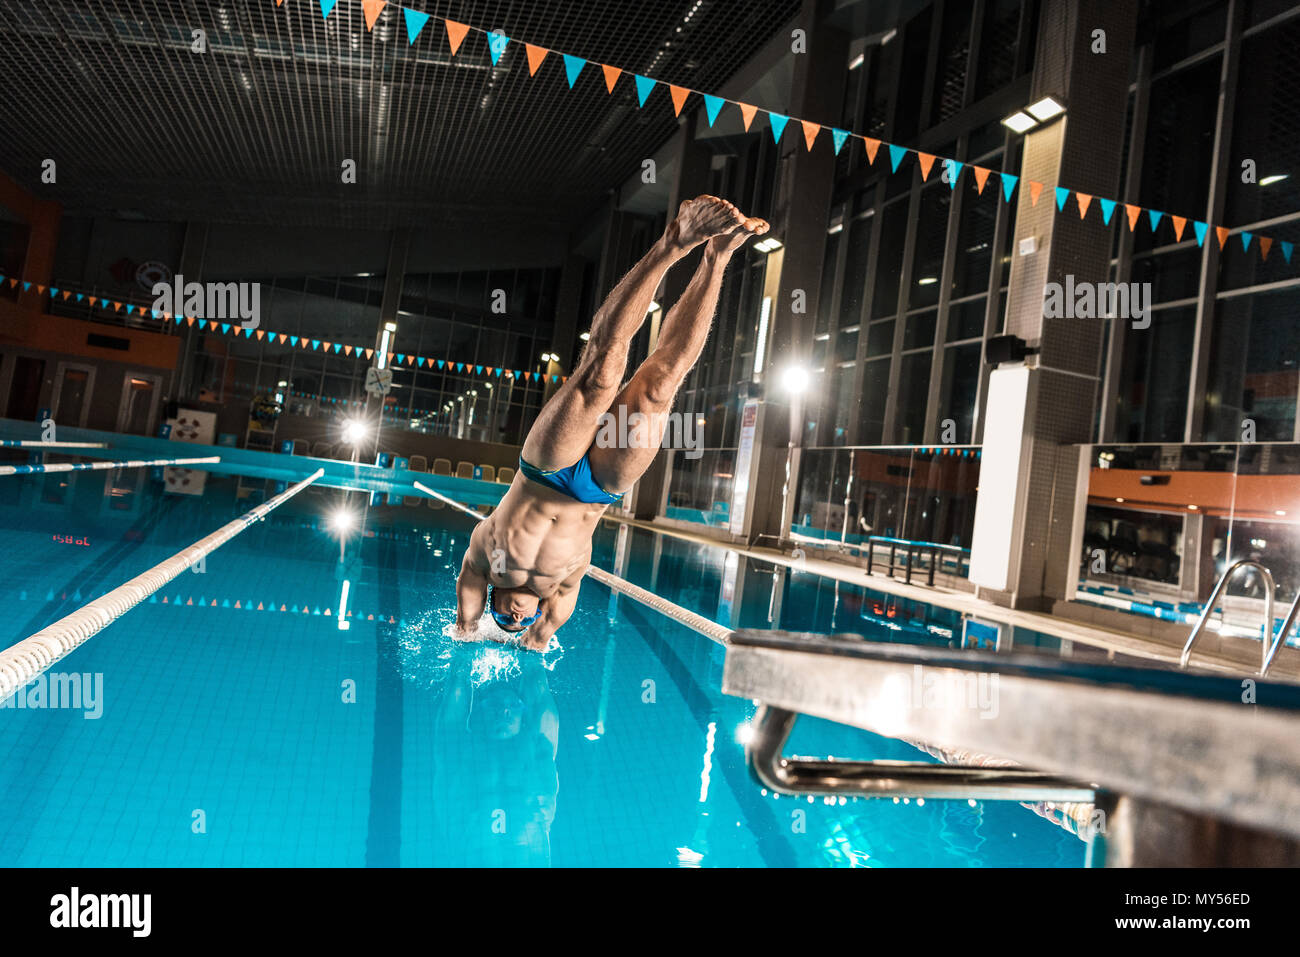 swimmer diving in competition swimming pool - Stock Image